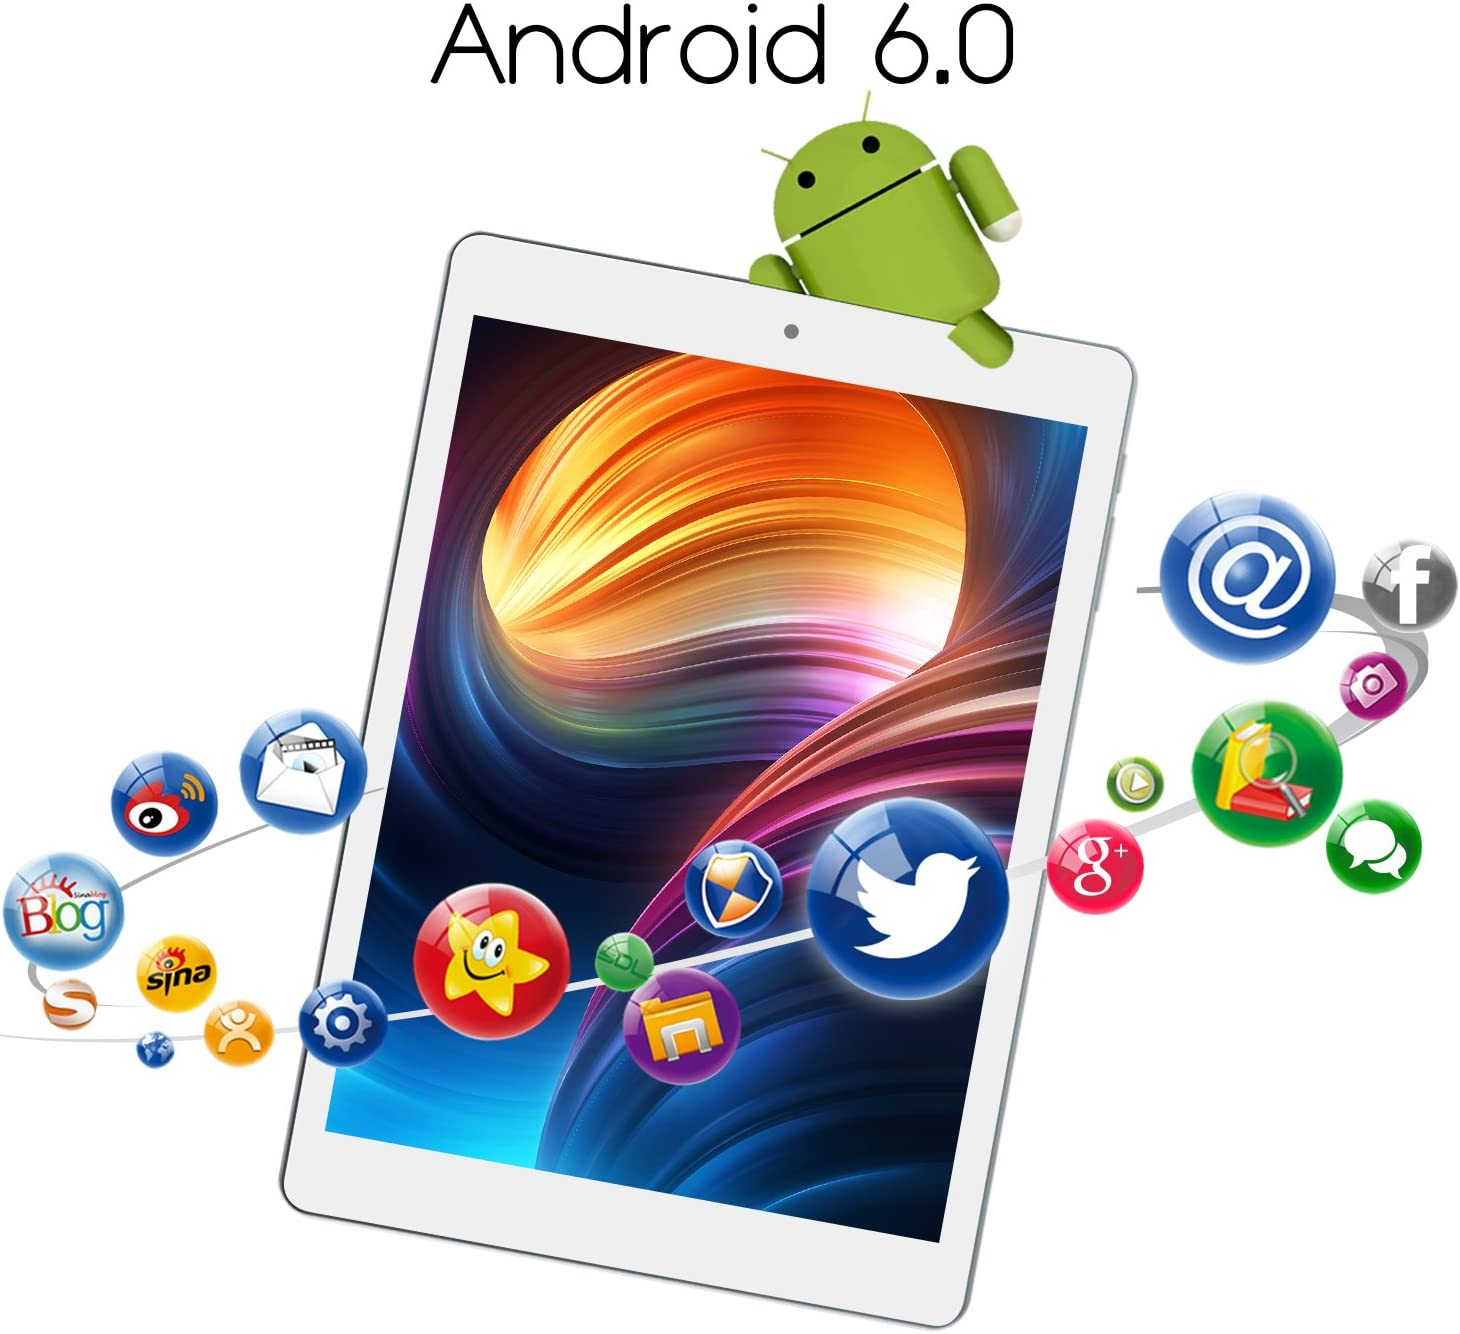 ALLDOCUBE iPlay8 Tablet, 7.85 inch 1024x768 IPS Screen Tablet PCs, MTK MT8163 Quad Core 1.3Ghz, 1GB RAM, 16GB ROM, Android 6.0, Support HDMI Output, ...